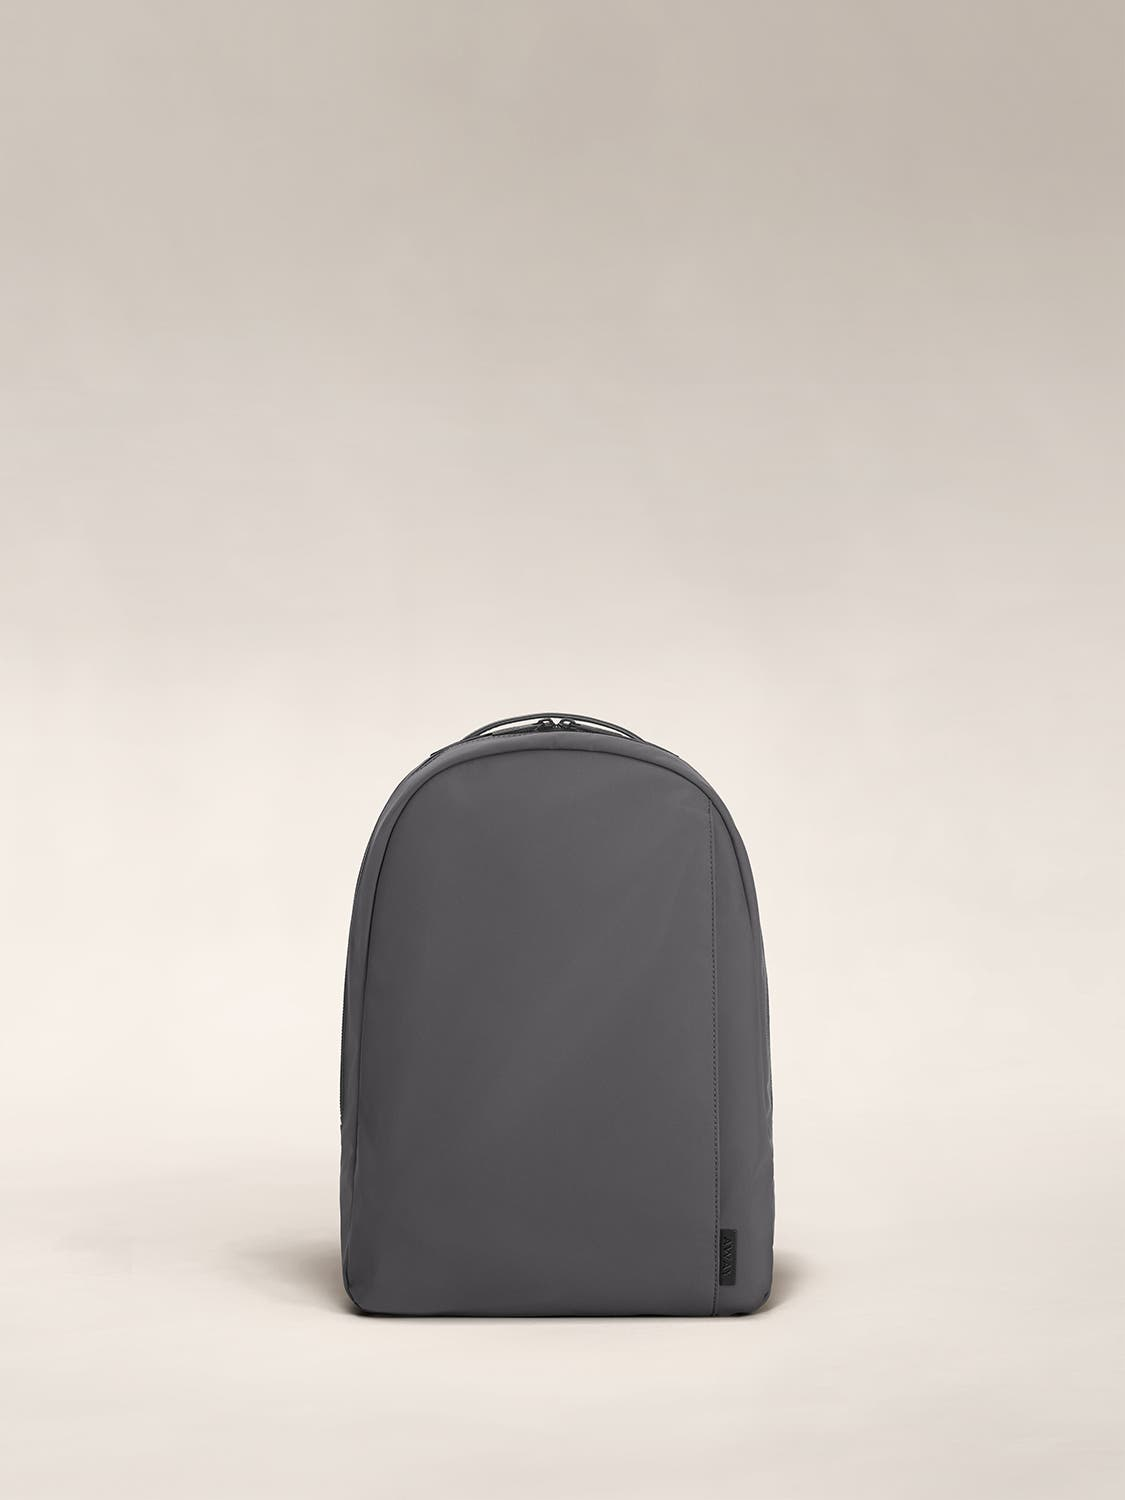 Front view of a gray small backpack.